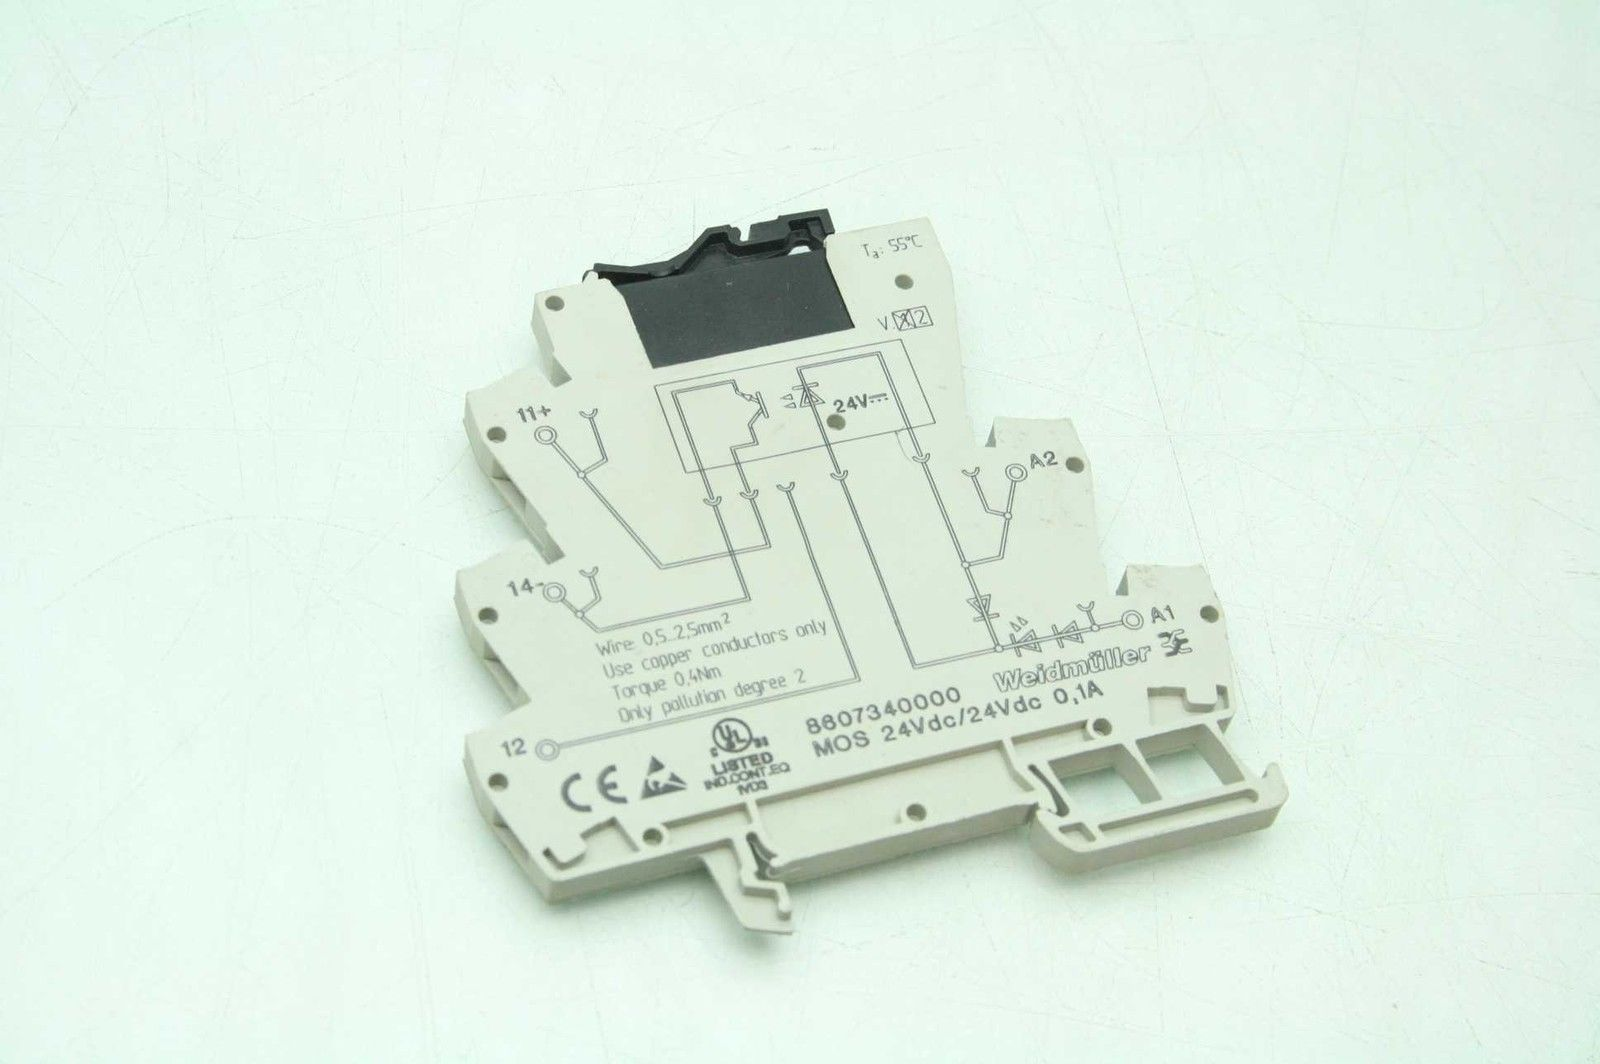 Weidmuller Mos 24vdc Socket 2 Tyco V23109 S2421 D001 48v Solid The Professional State Relay Used Motion Constrained Surplus